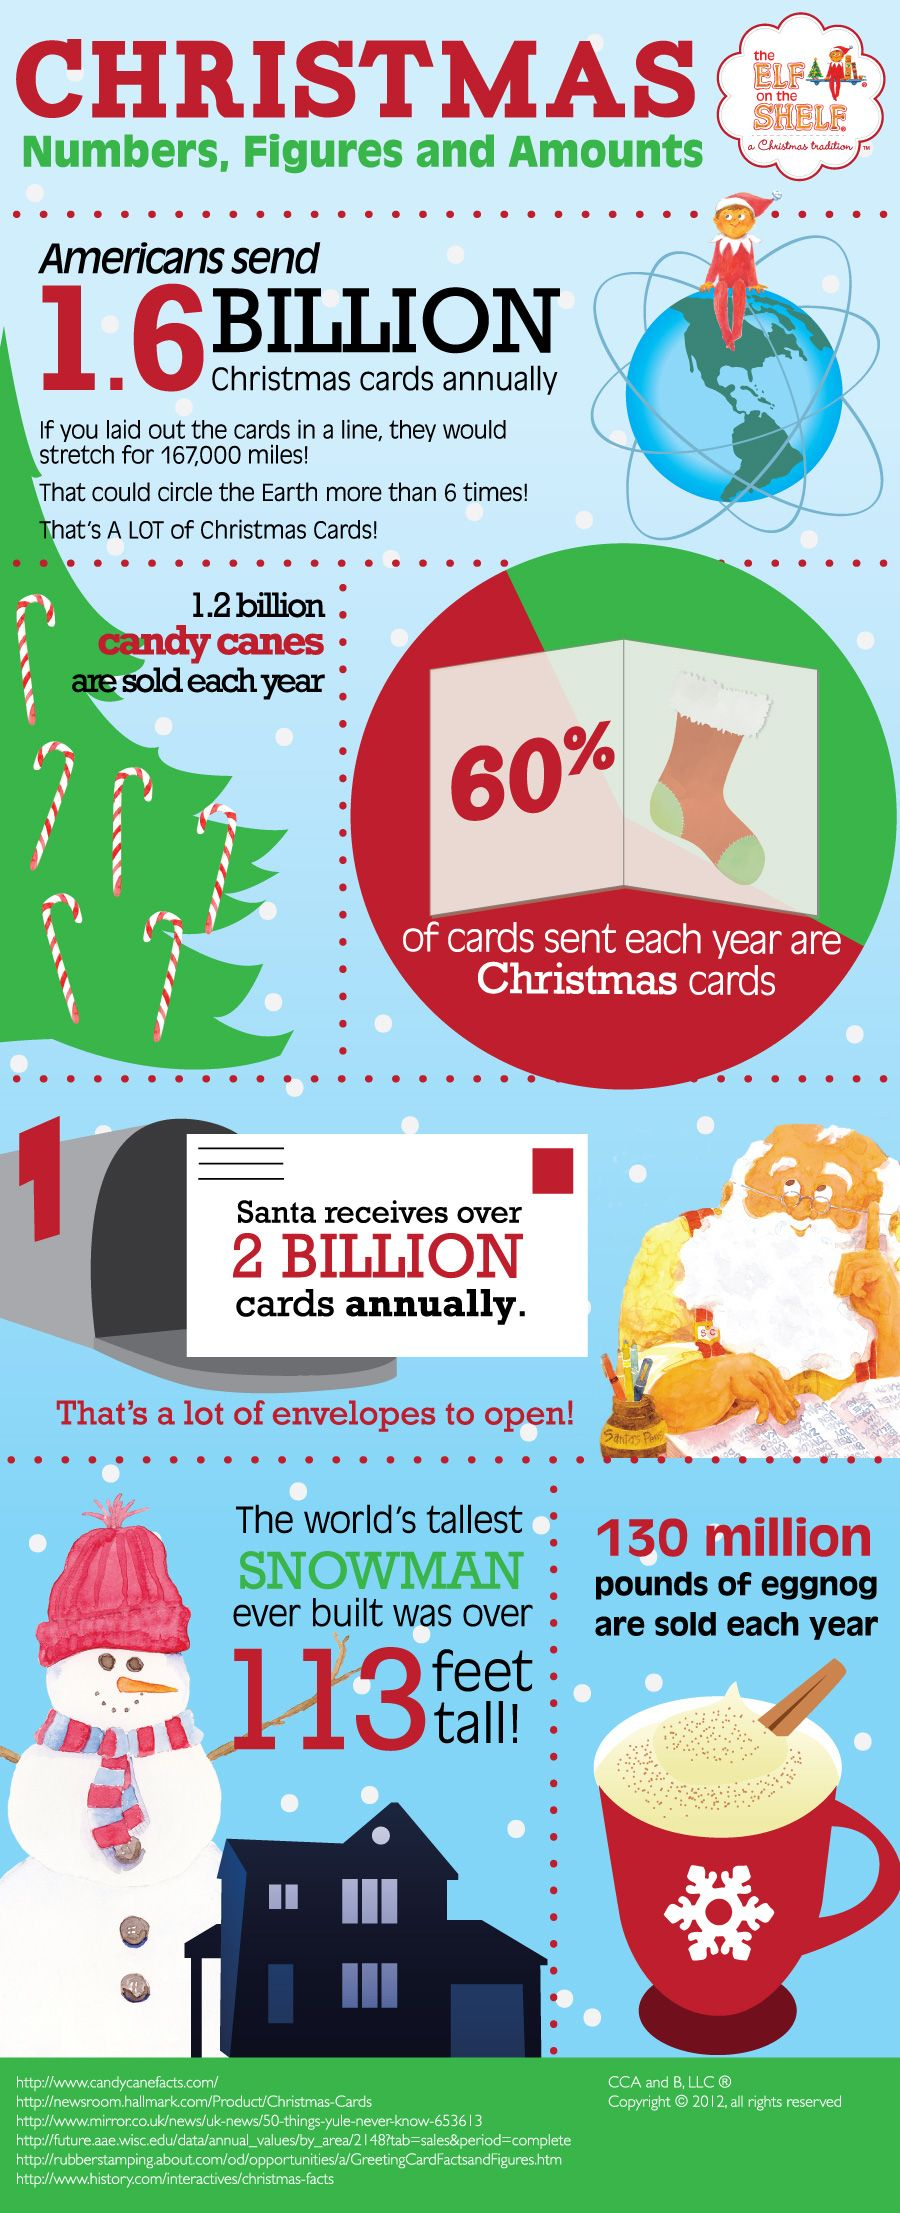 Christmas Numbers Figures And Amounts Yes It S True Santa Receives 2 Billion Christmas Cards A Year Christmas Fun Facts Christmas Trivia Christmas Jokes